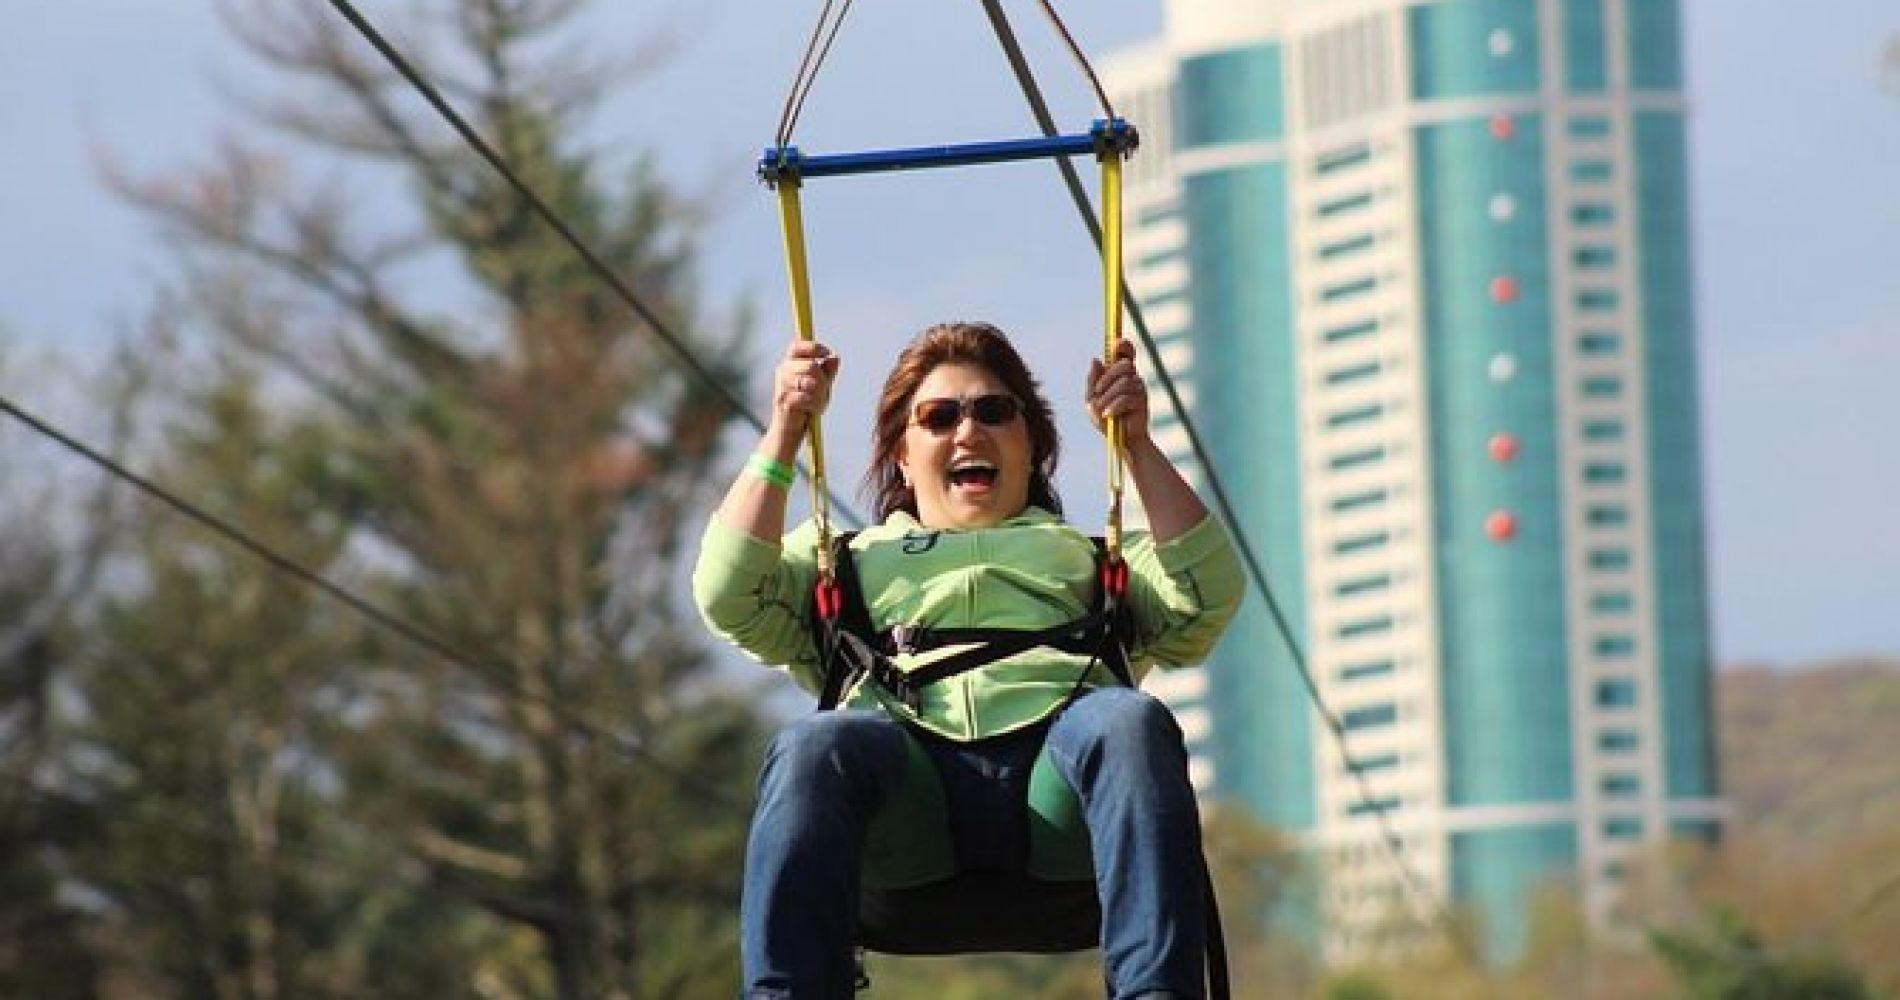 HighFlyer Zipline at Foxwoods